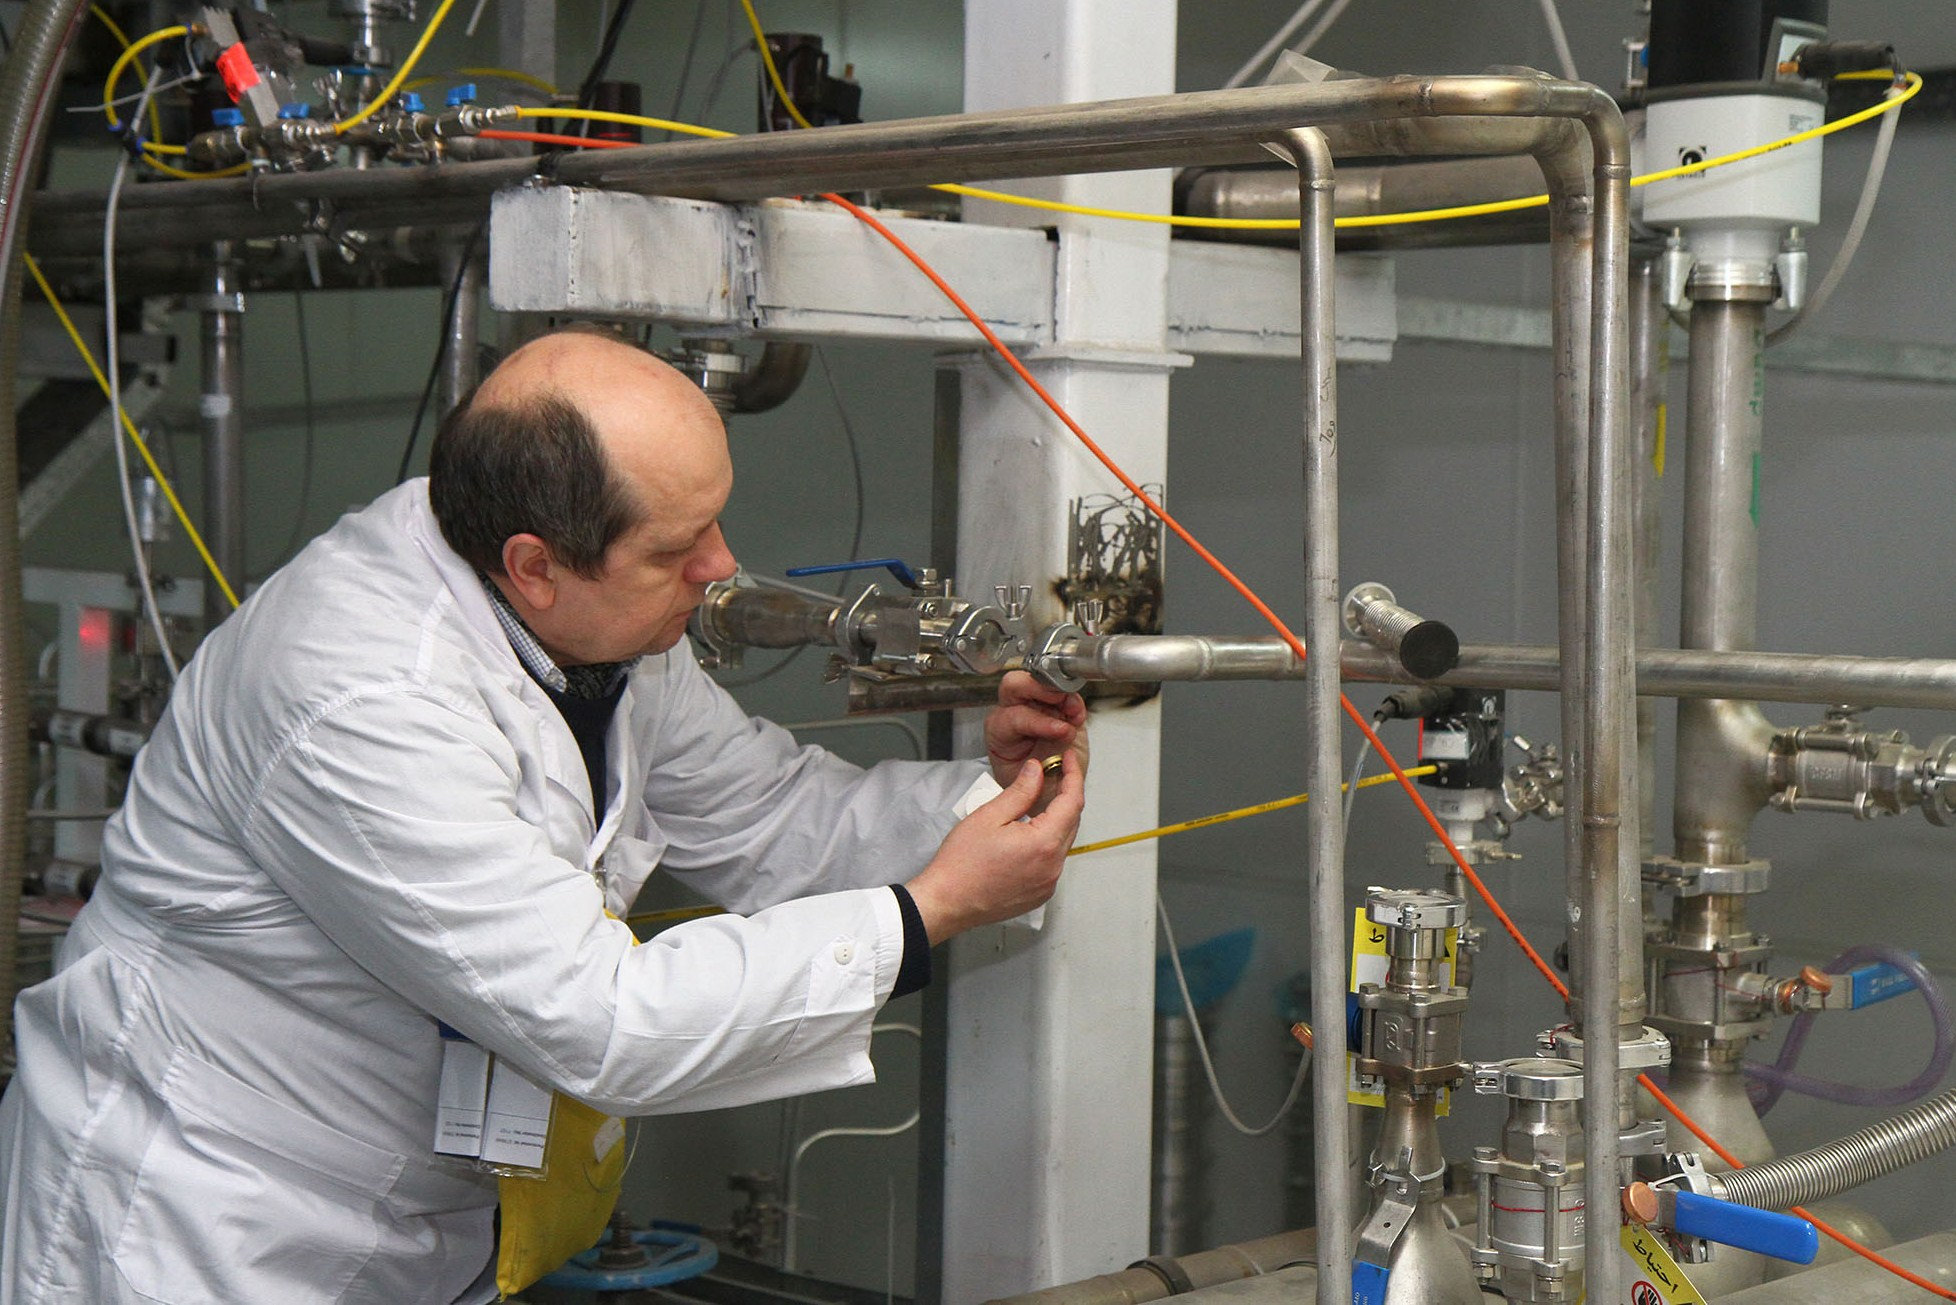 An International Atomic Energy Agency (IAEA) inspector disconnects the connections between the twin cascades for 20 percent uranium production at nuclear power plant of Natanz, some 300 kilometres south of Tehran on Jan. 20, 2014.